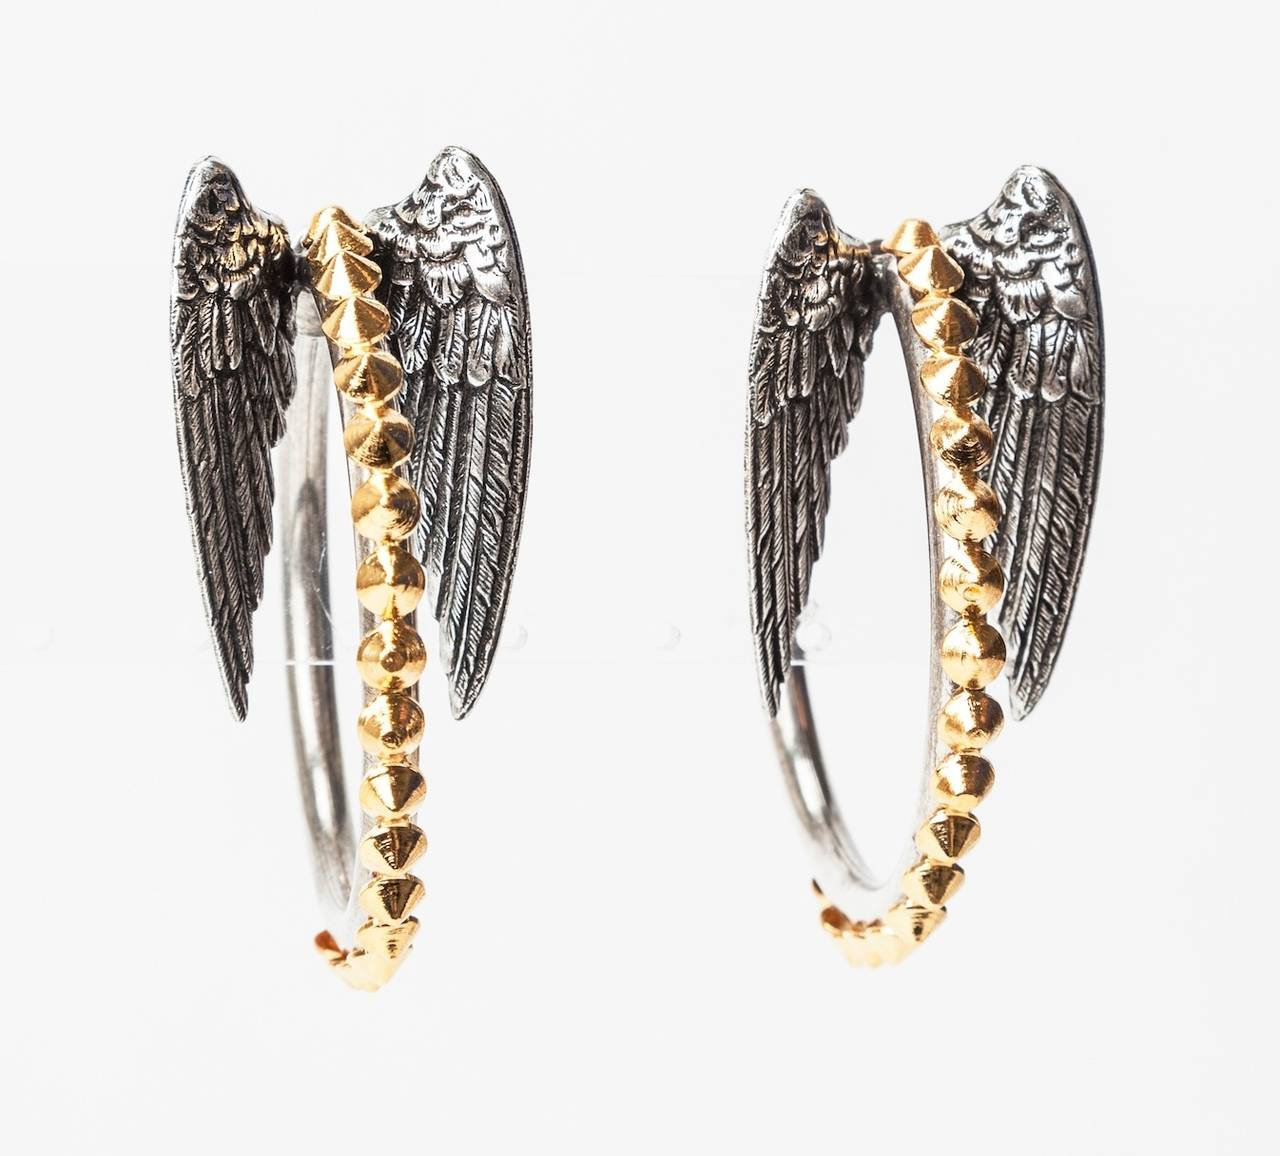 Oversized hoop earrings with wings on ears. Antique silver toned metal with gold stud applications. Made in the Parisian studios of Mark Walsh Leslie Chin.